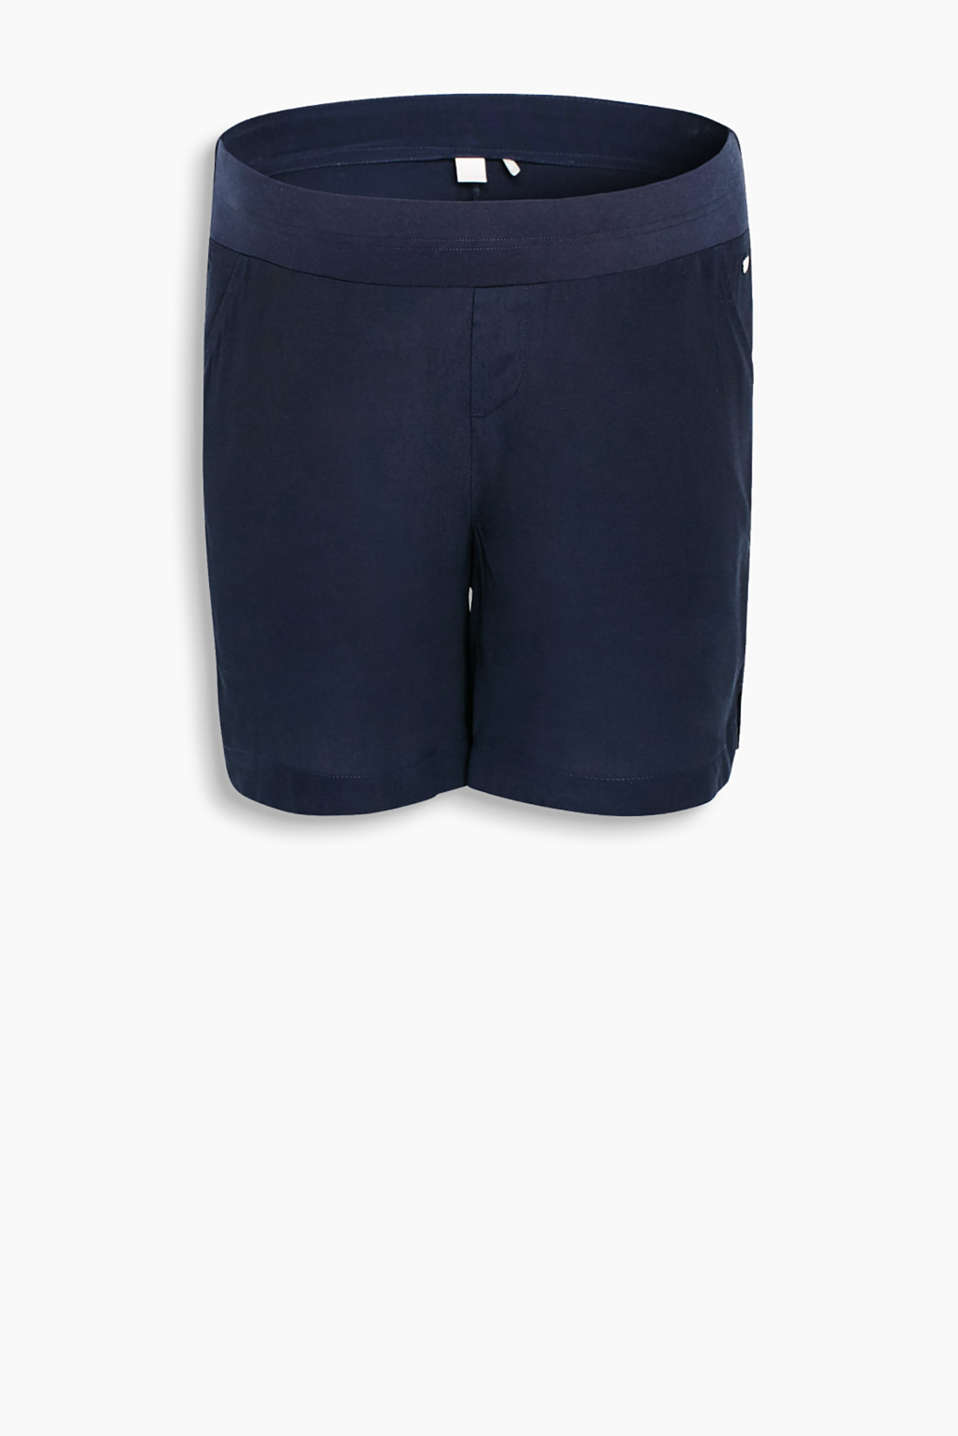 Airy Bermudas made of lightweight fabric with a supporting, below-bump waistband